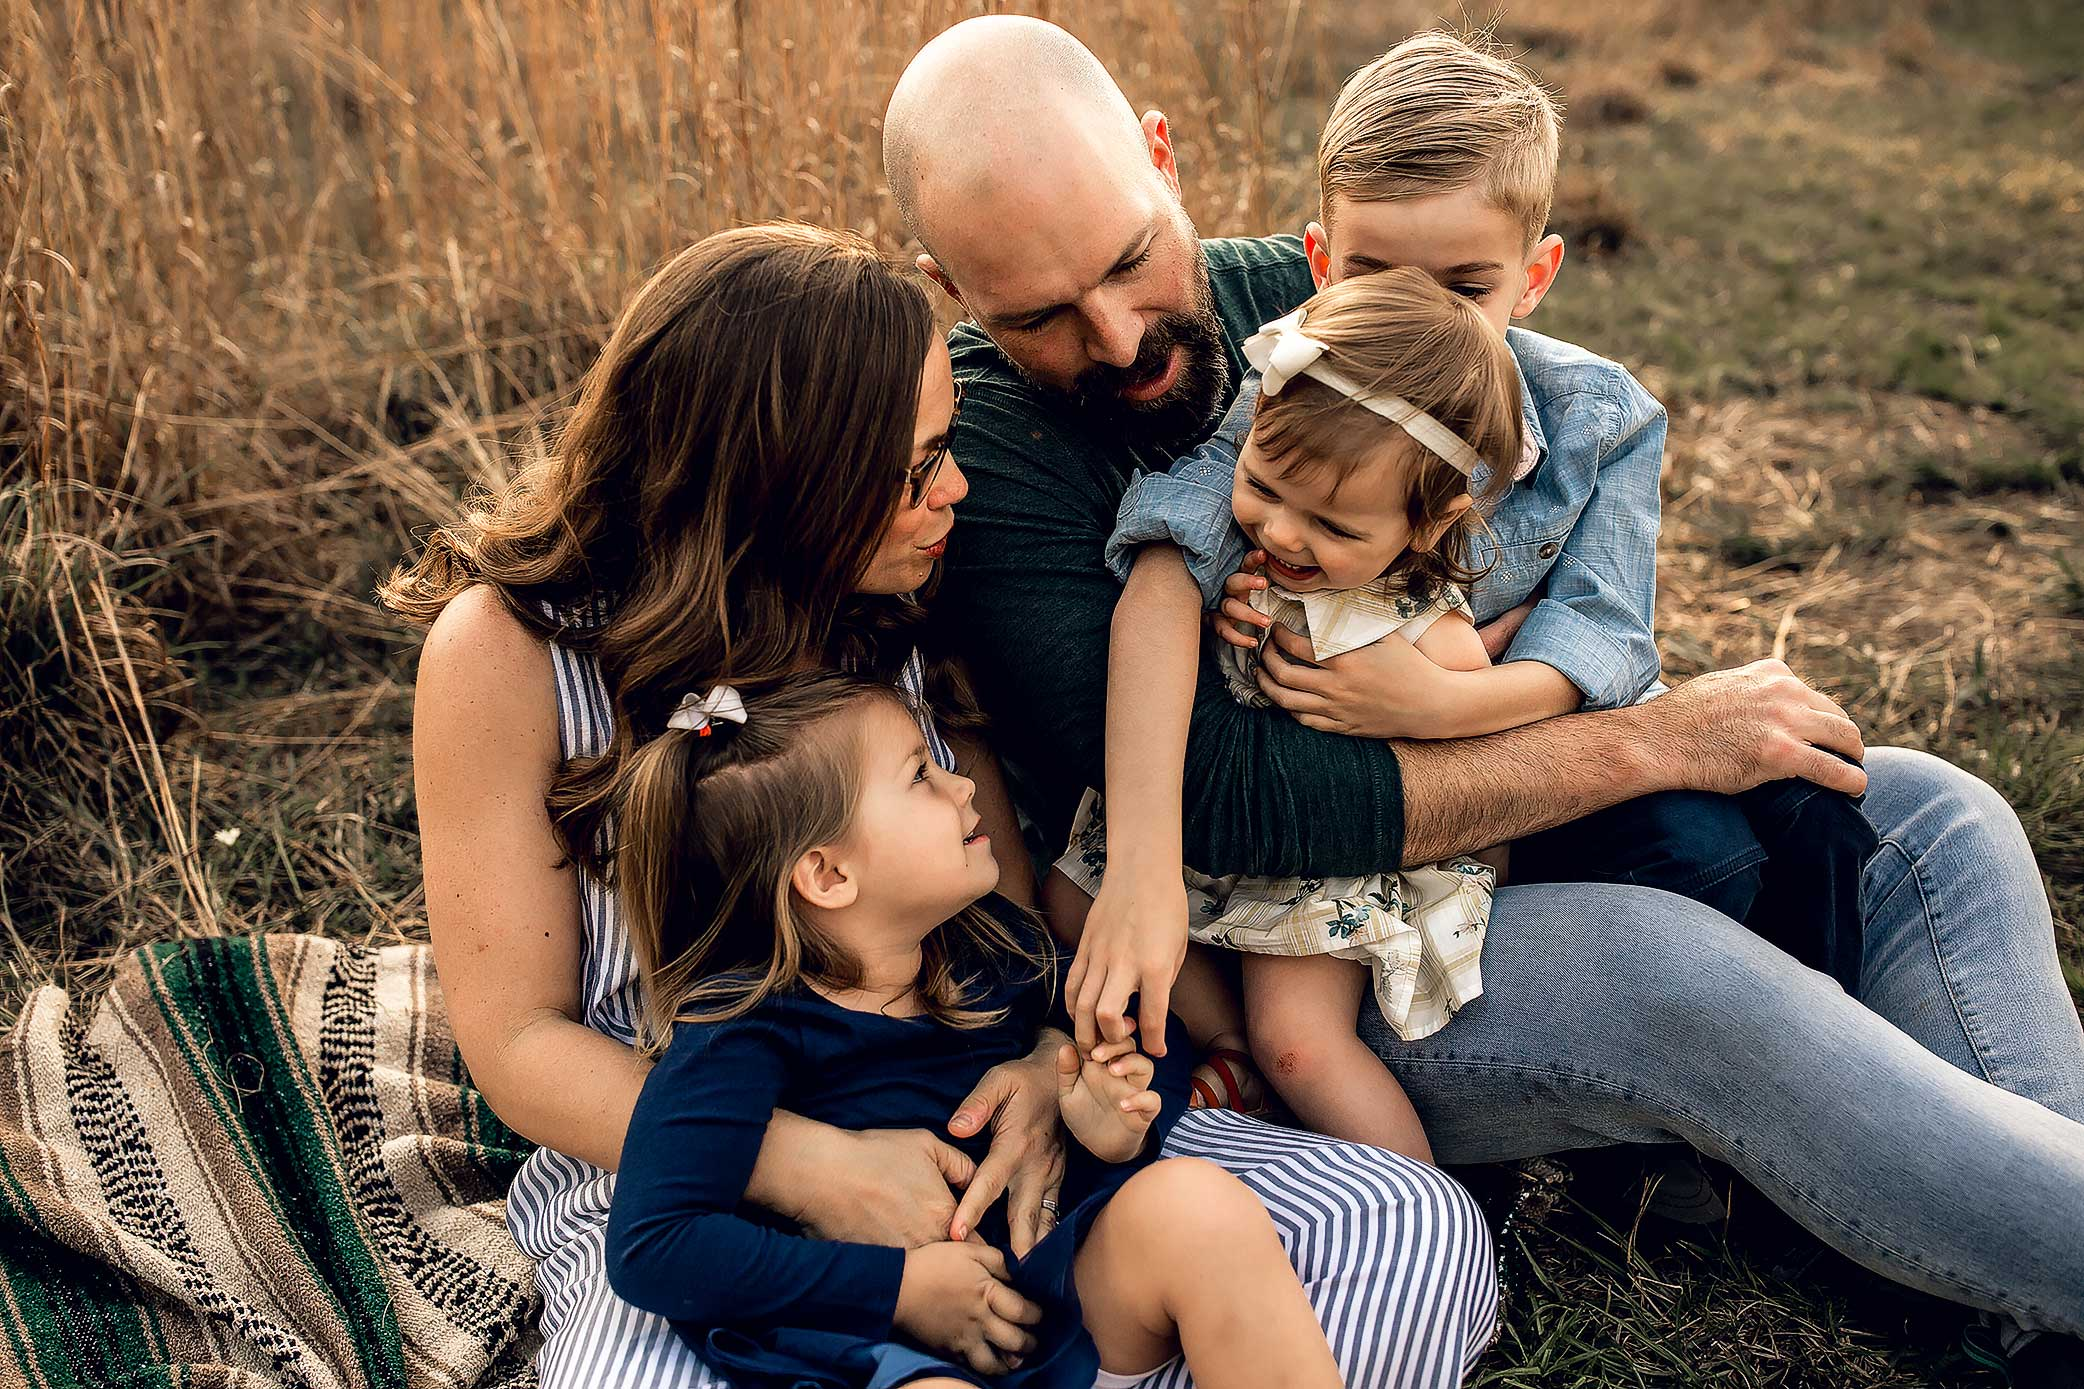 shelby-schiller-photography-lifestyle-family-session-with-3-kids-spring-2019-green-blue-yellow-college-station-32.jpg